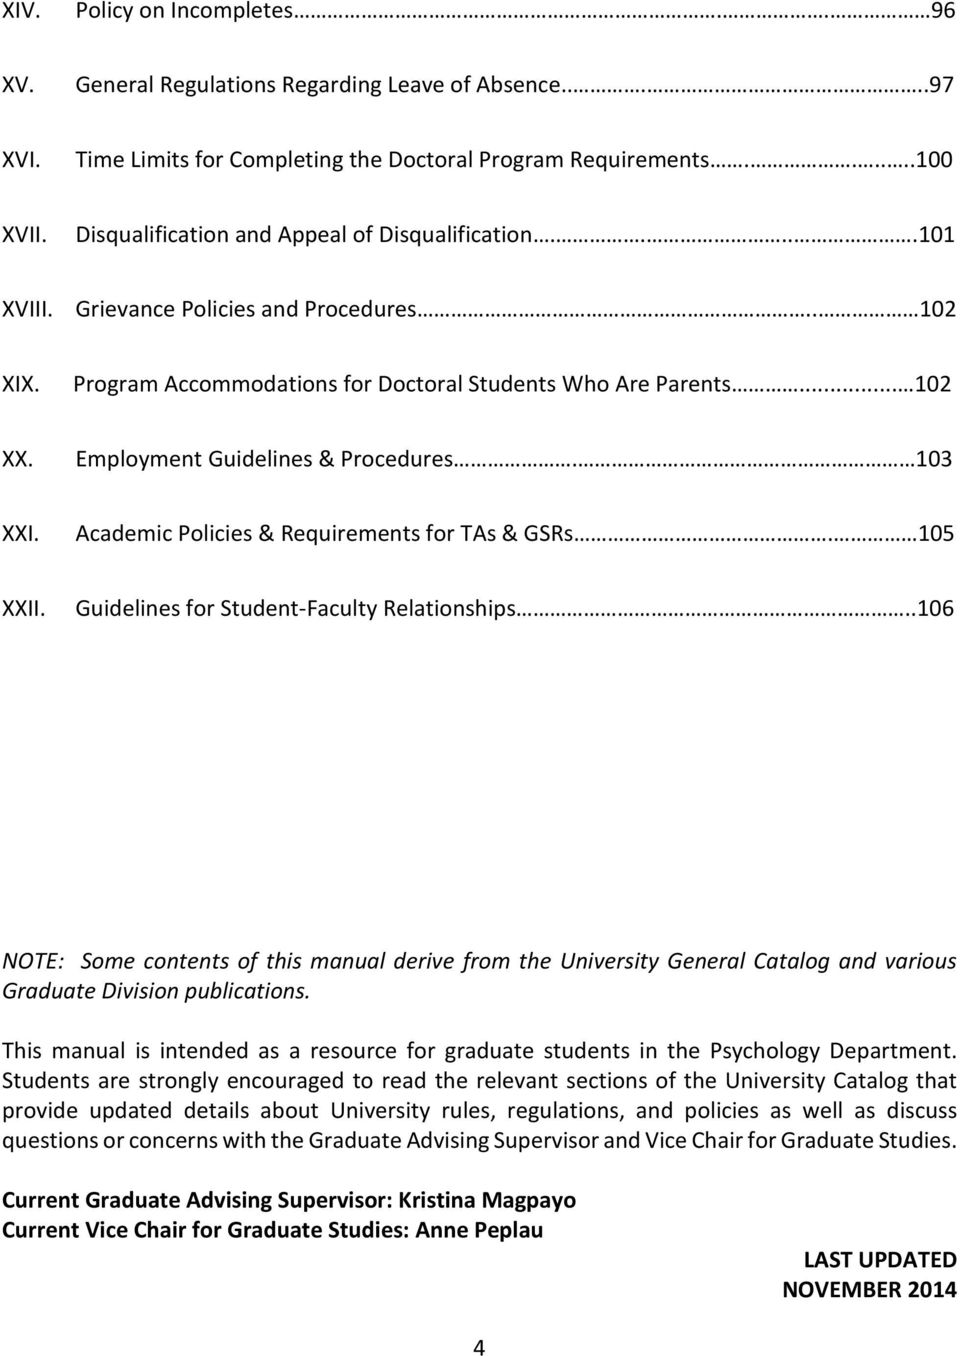 Employment Guidelines & Procedures. 103 XXI. Academic Policies & Requirements for TAs & GSRs. 105 XXII. Guidelines for Student-Faculty Relationships.